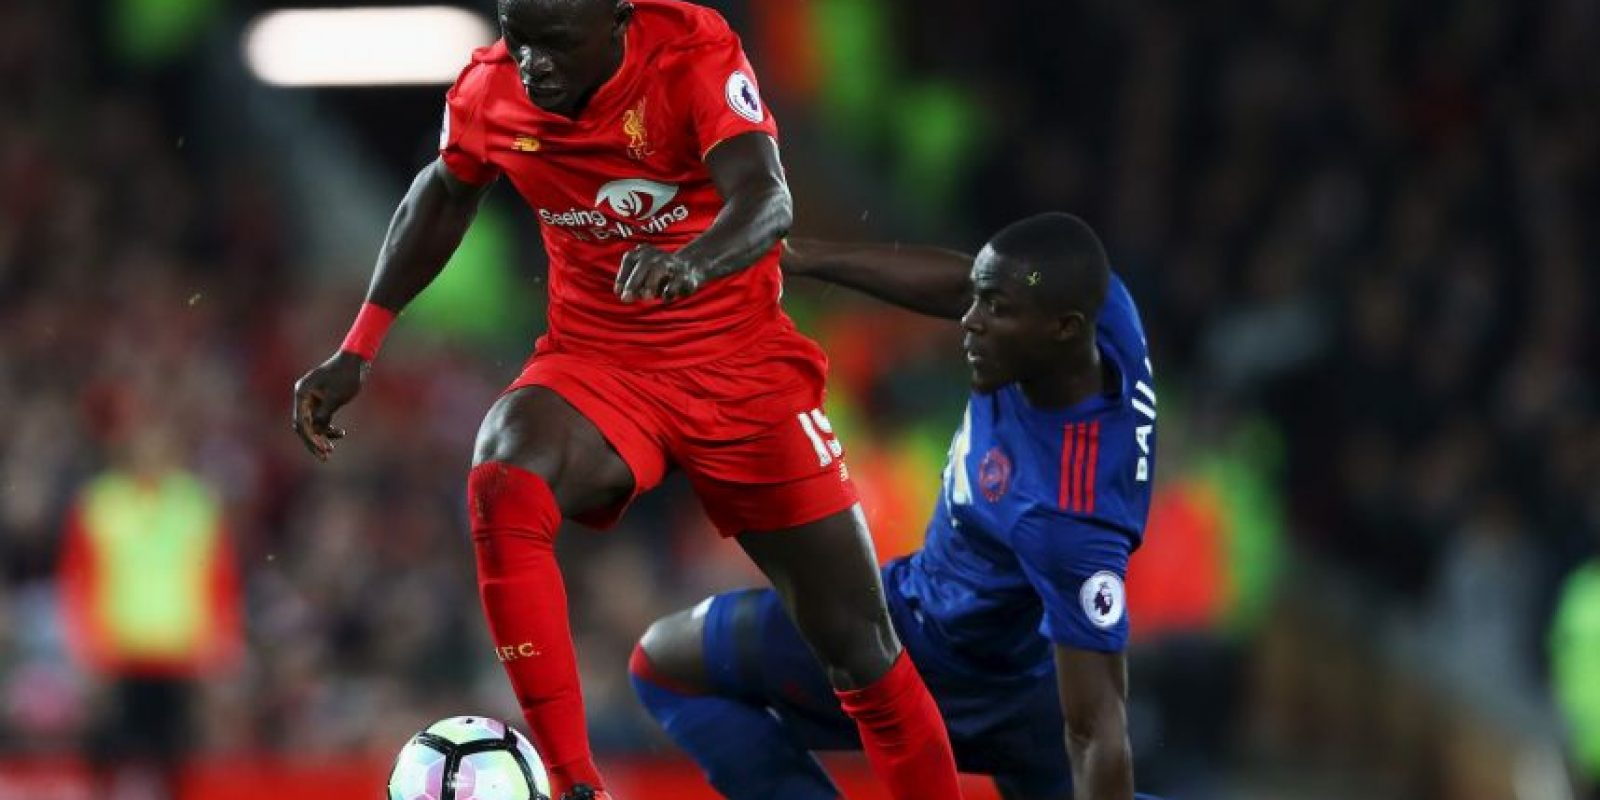 15.Sadio Mane (Liverpool) – 34.75 km/h Foto: Getty images